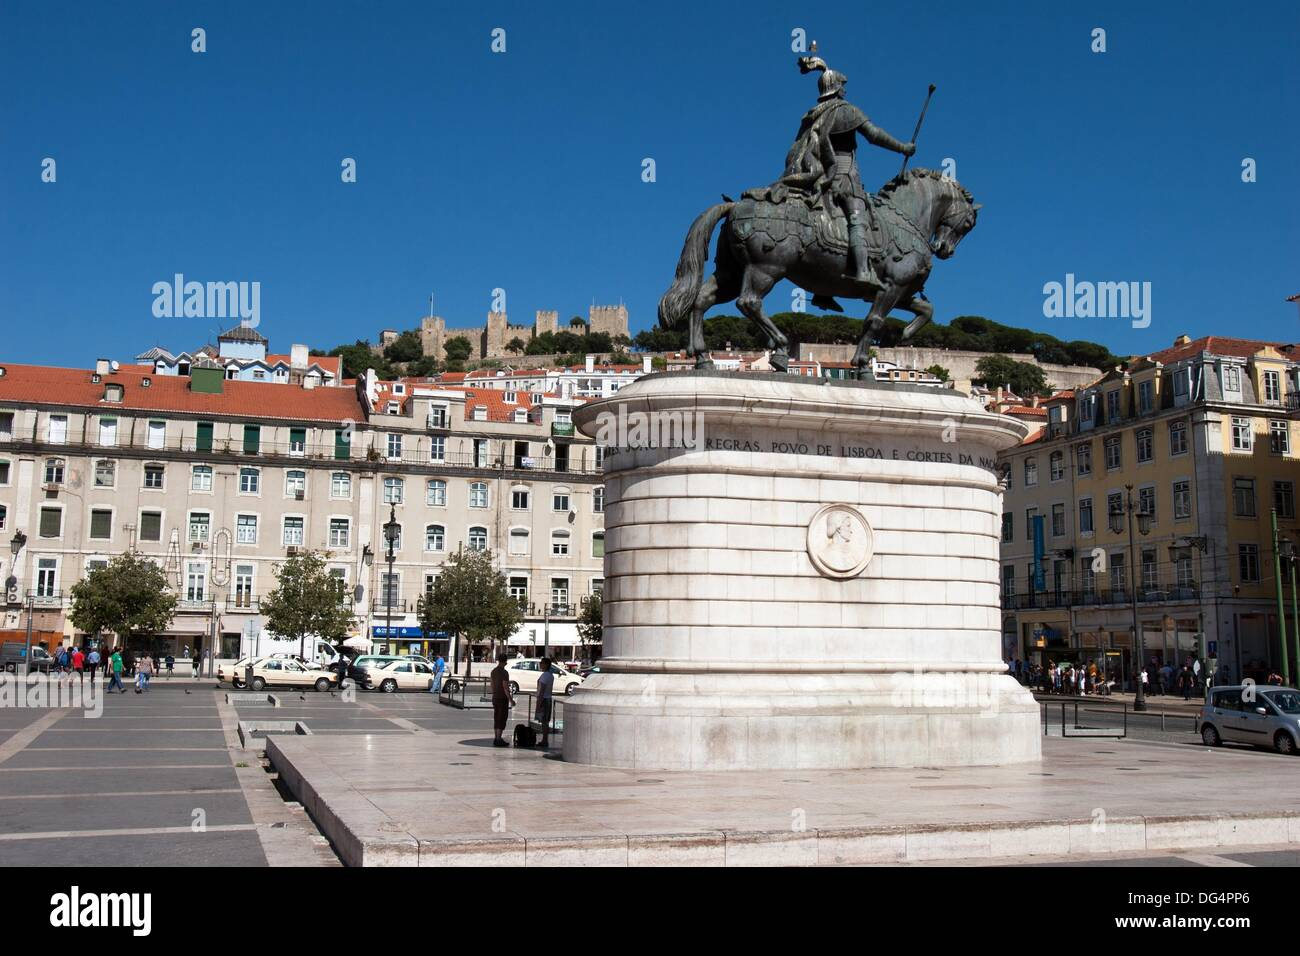 Equestre Statue to king John I in Figueira Square, Lisbon, Portugal - Stock Image